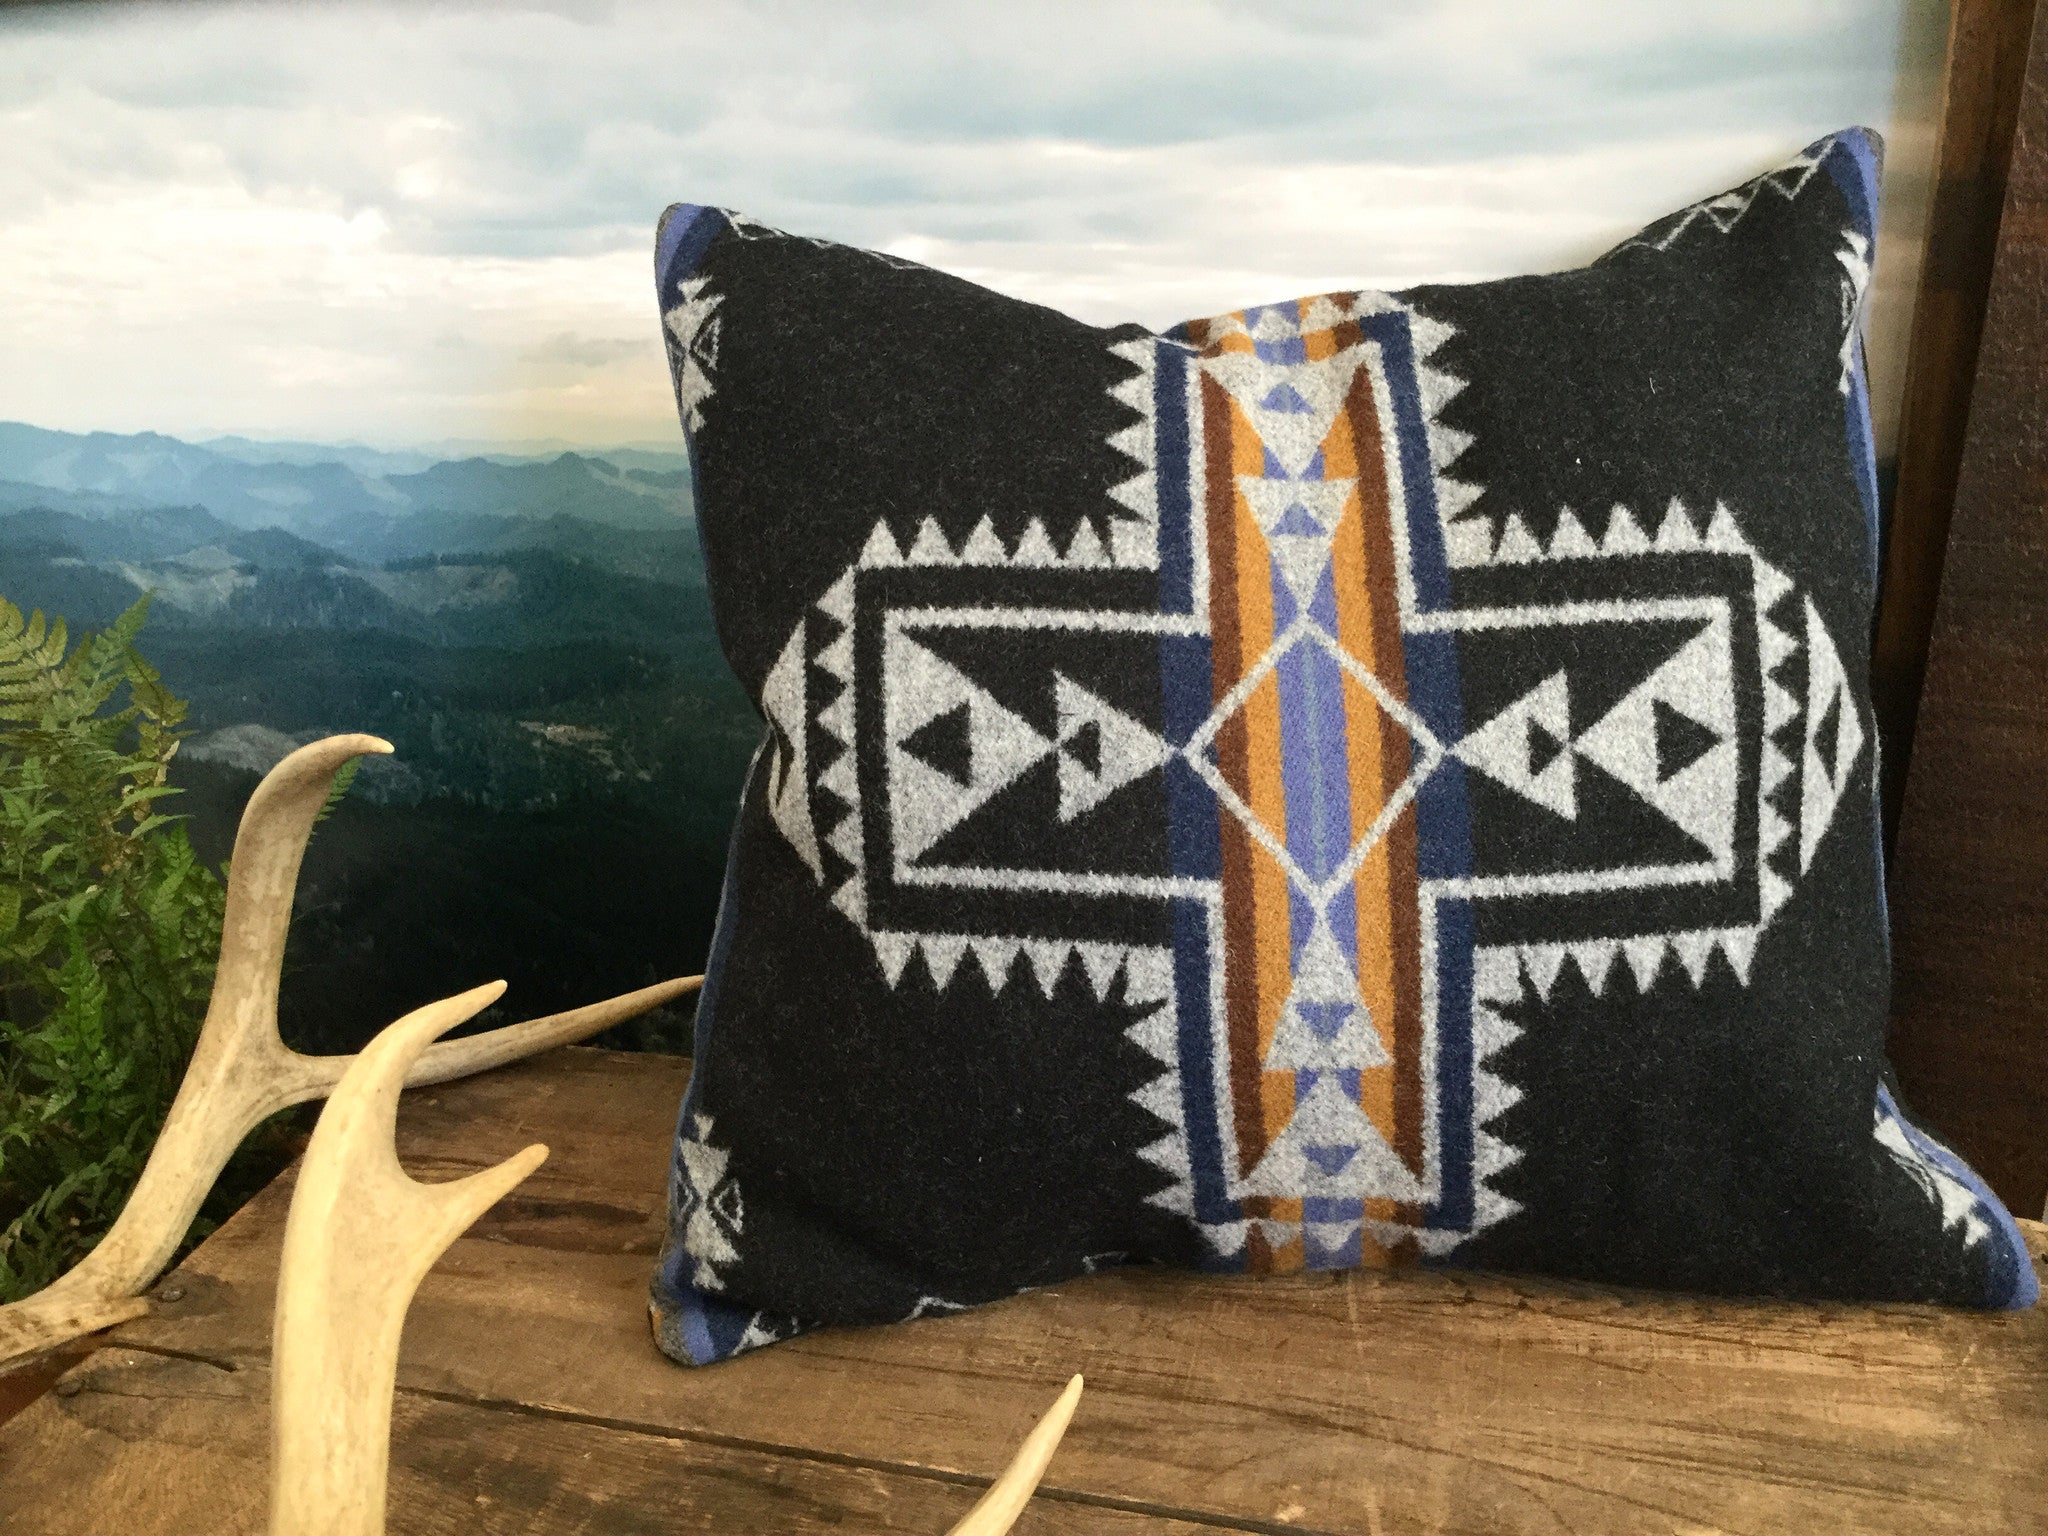 Western Cross Pillow Cover in Pendleton Wool